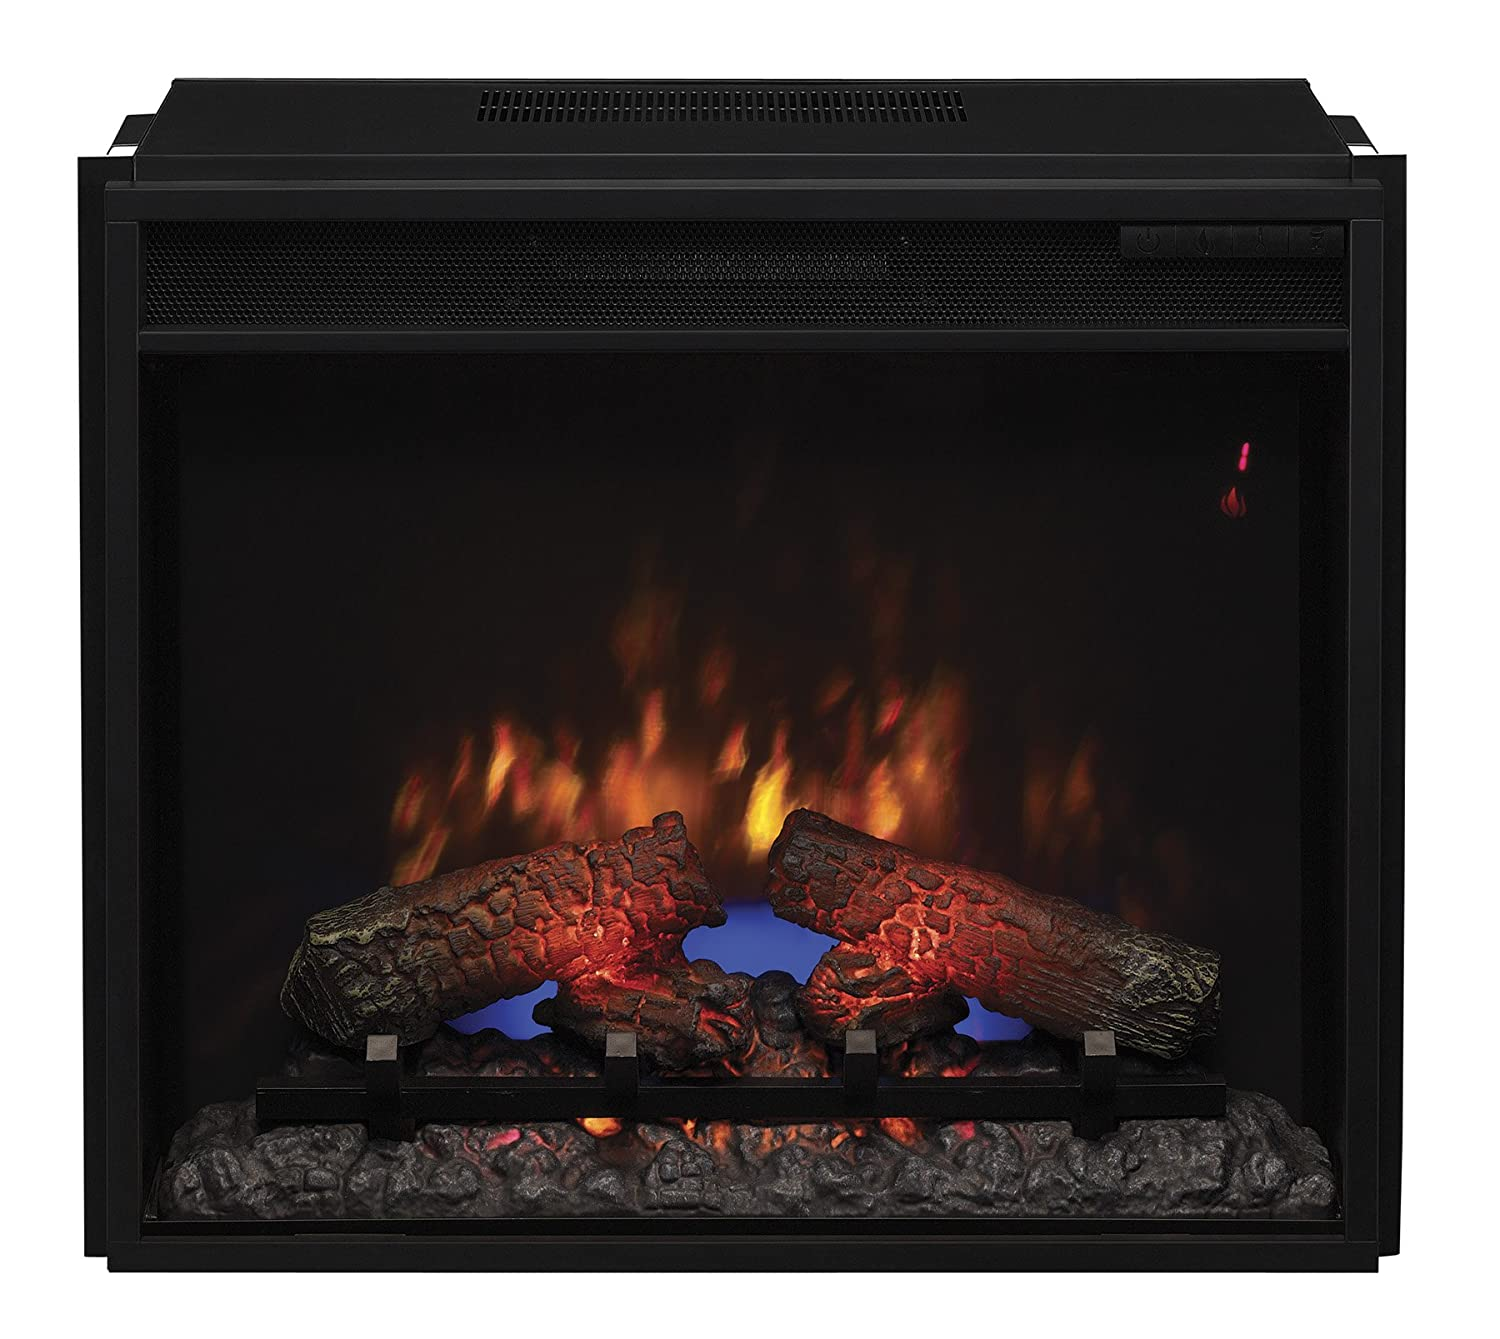 Amazon Com Classicflame 23ef031grp 23 Electric Fireplace Insert